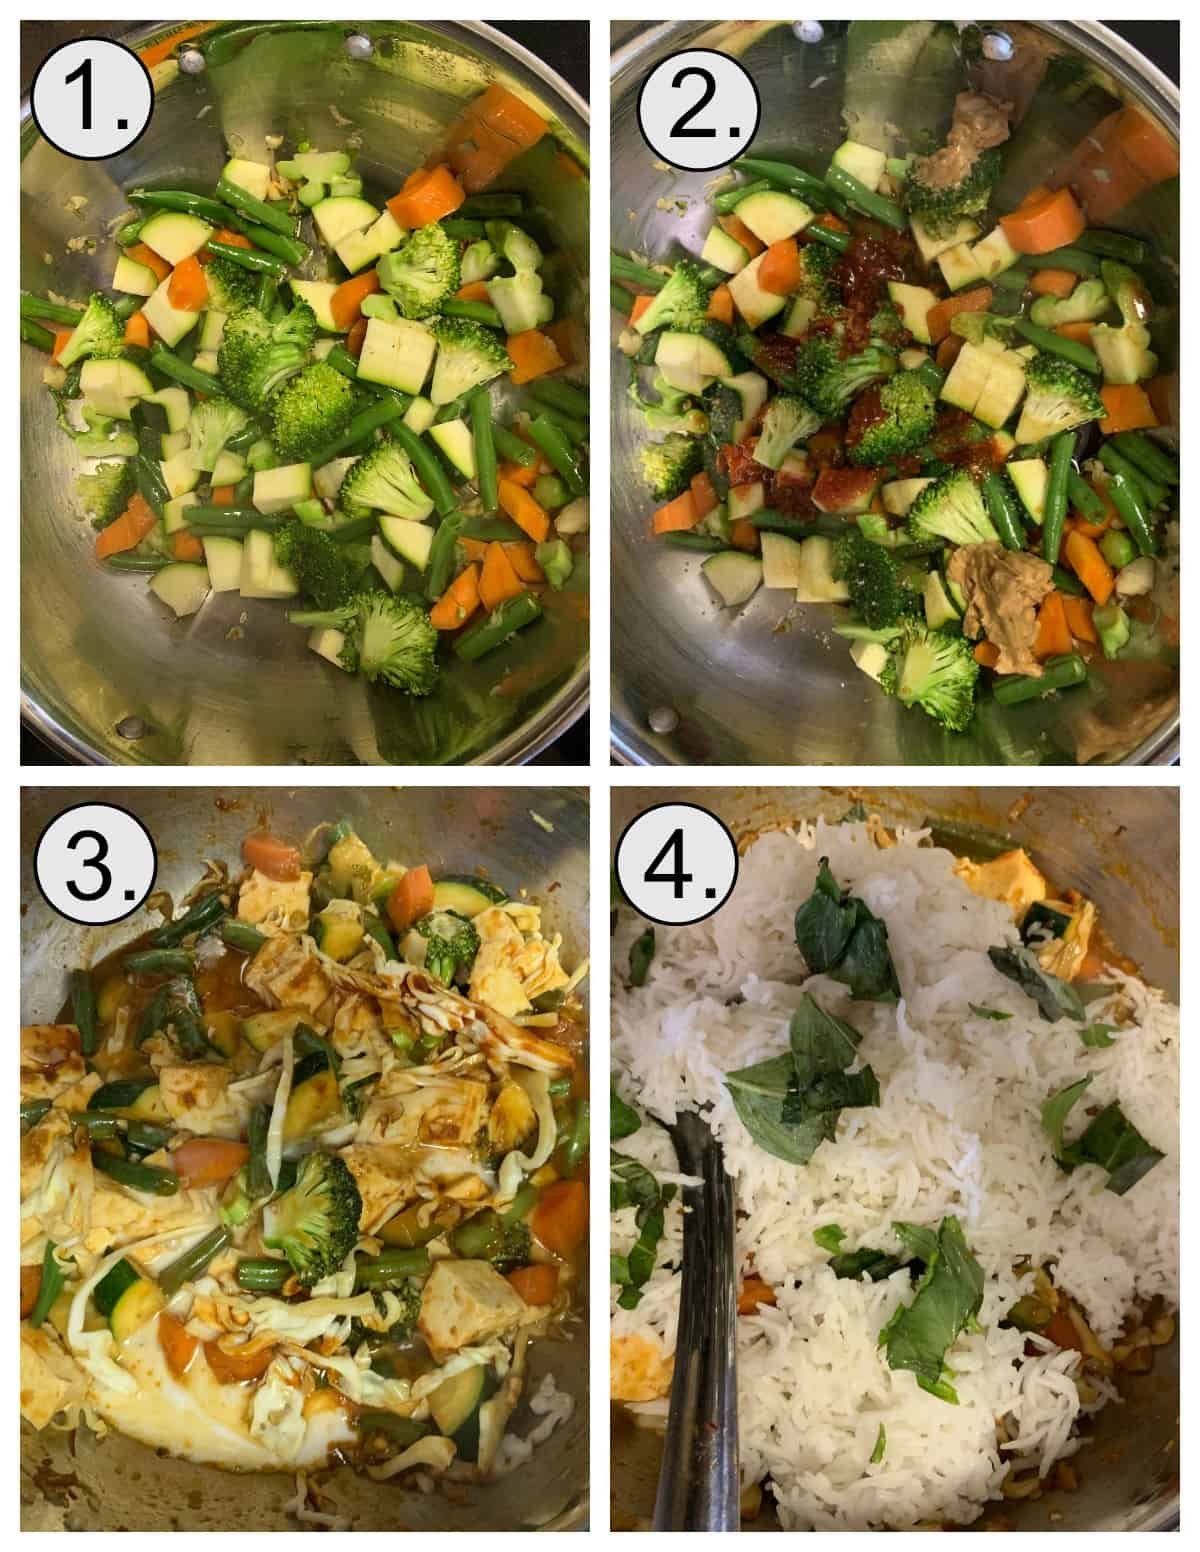 Step by step instructions to make red curry fried rice in a wok.